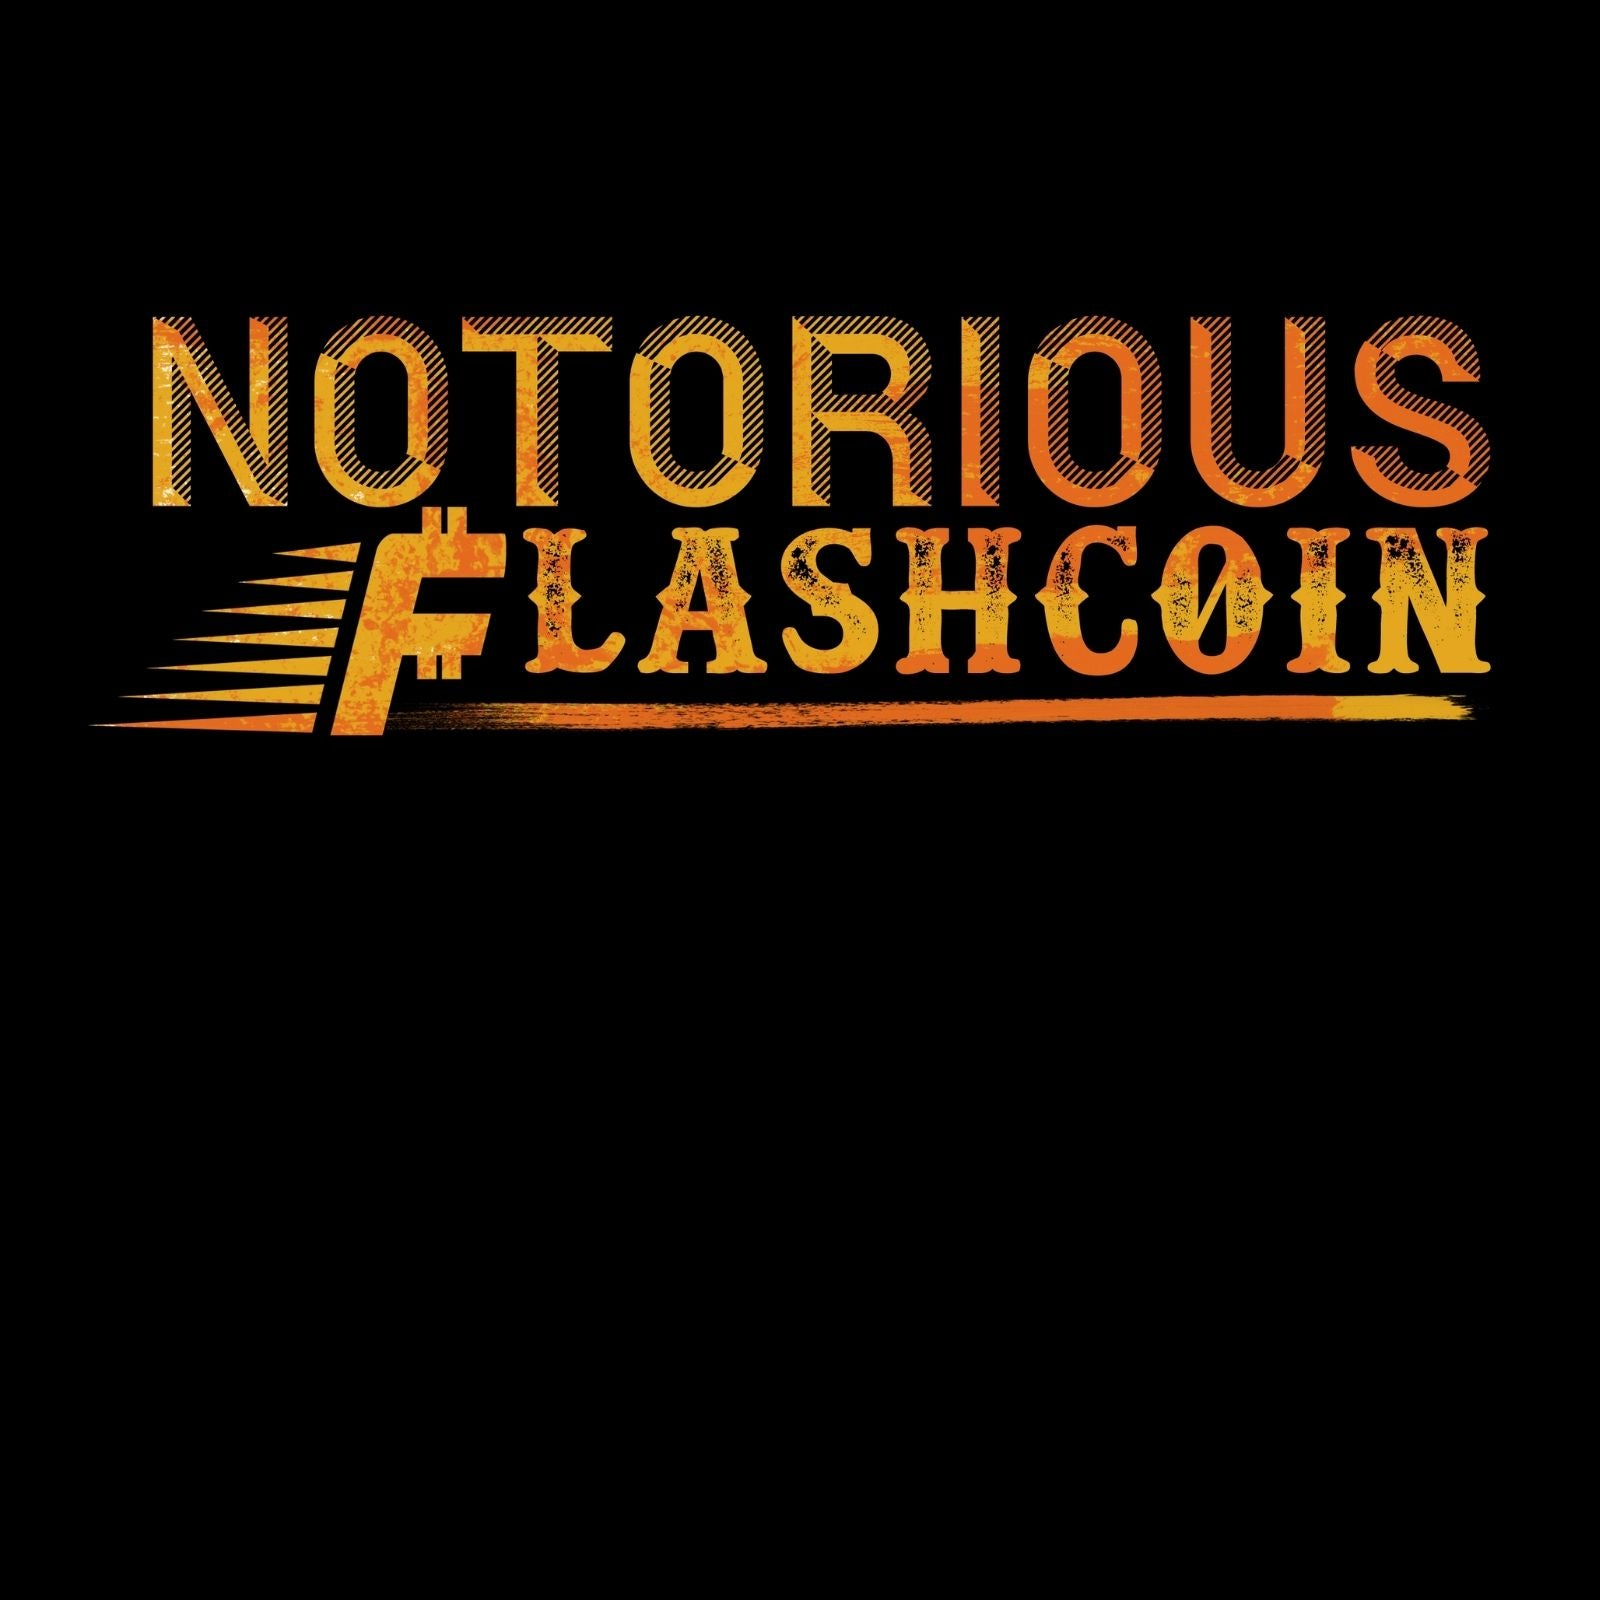 Notorious Flashcoin - Bastard Graphics